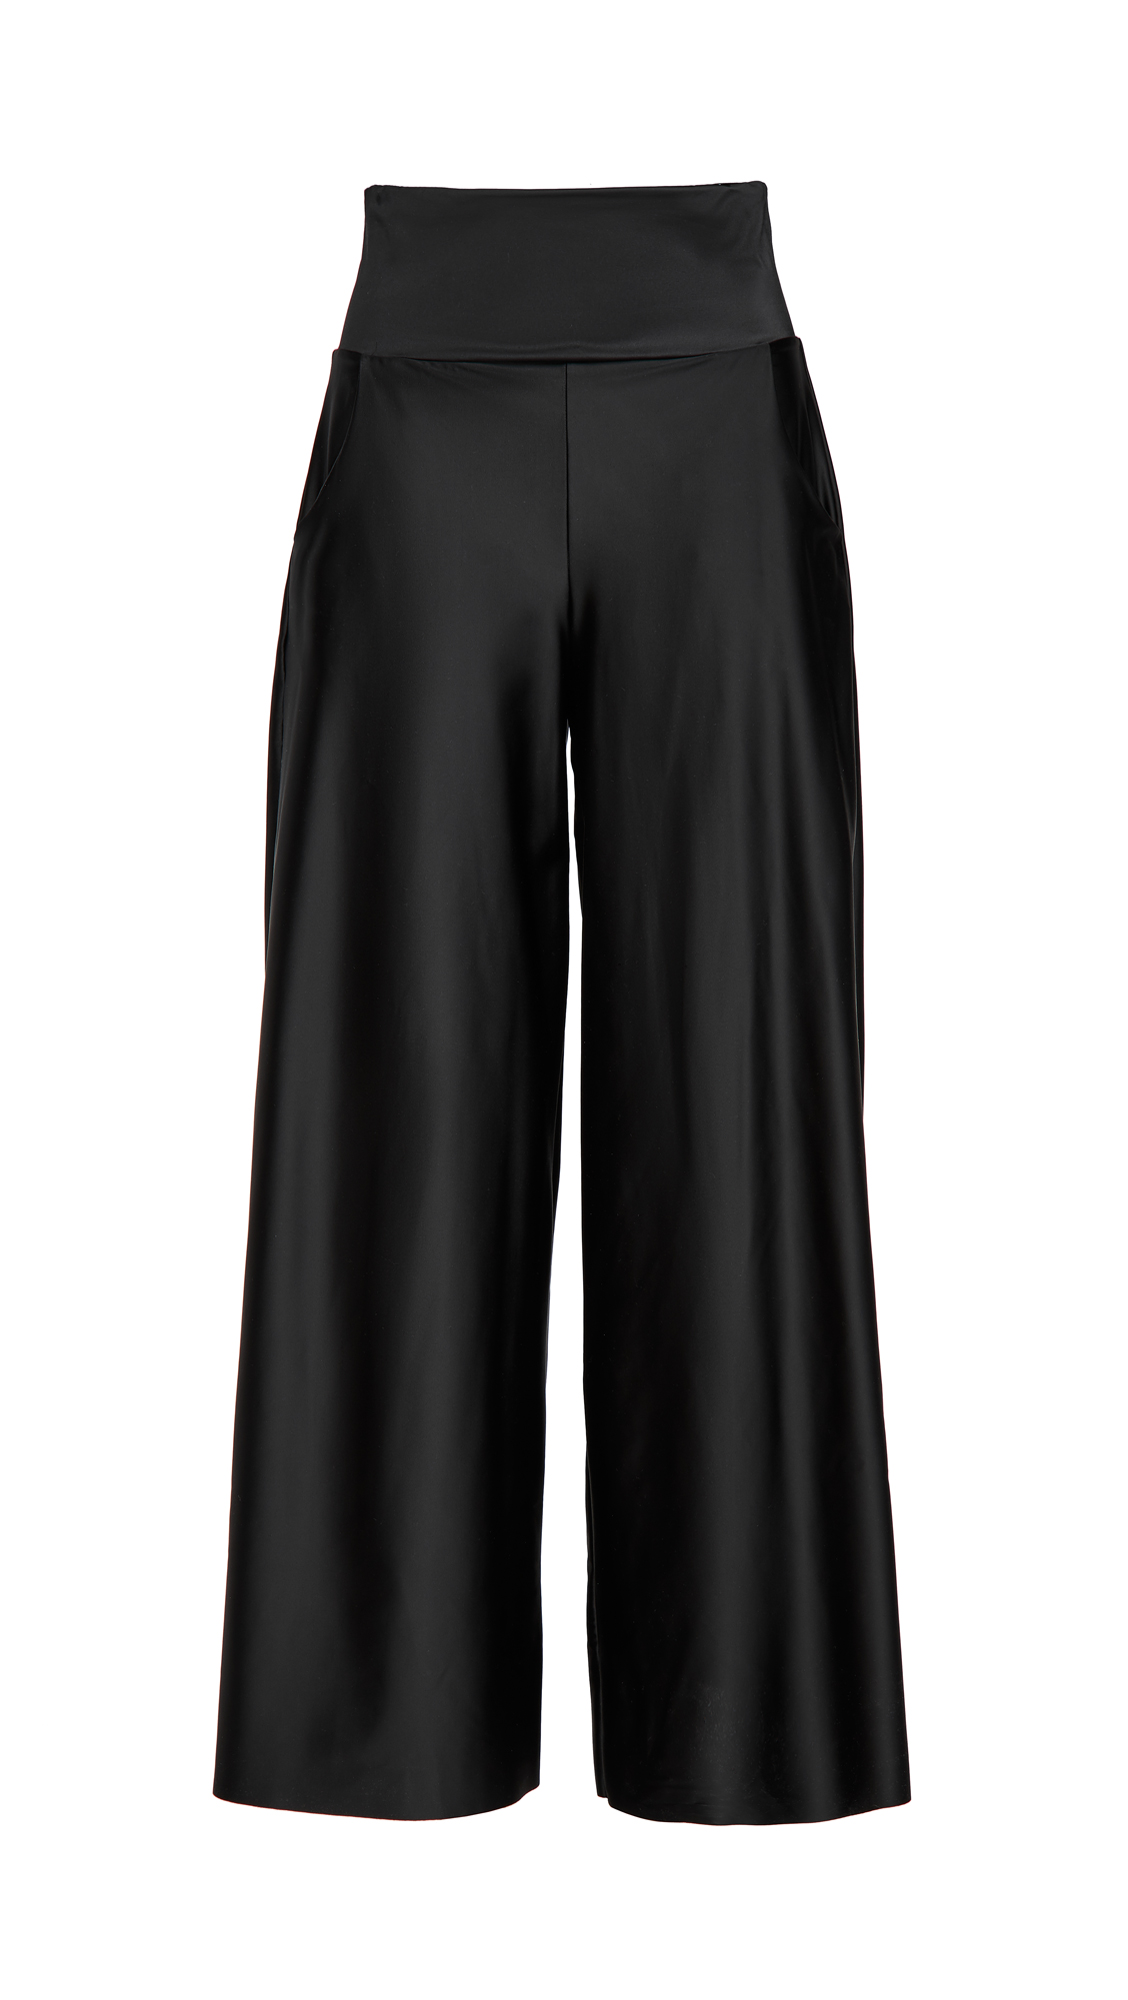 Commando Smooth Satin Lounge Pants